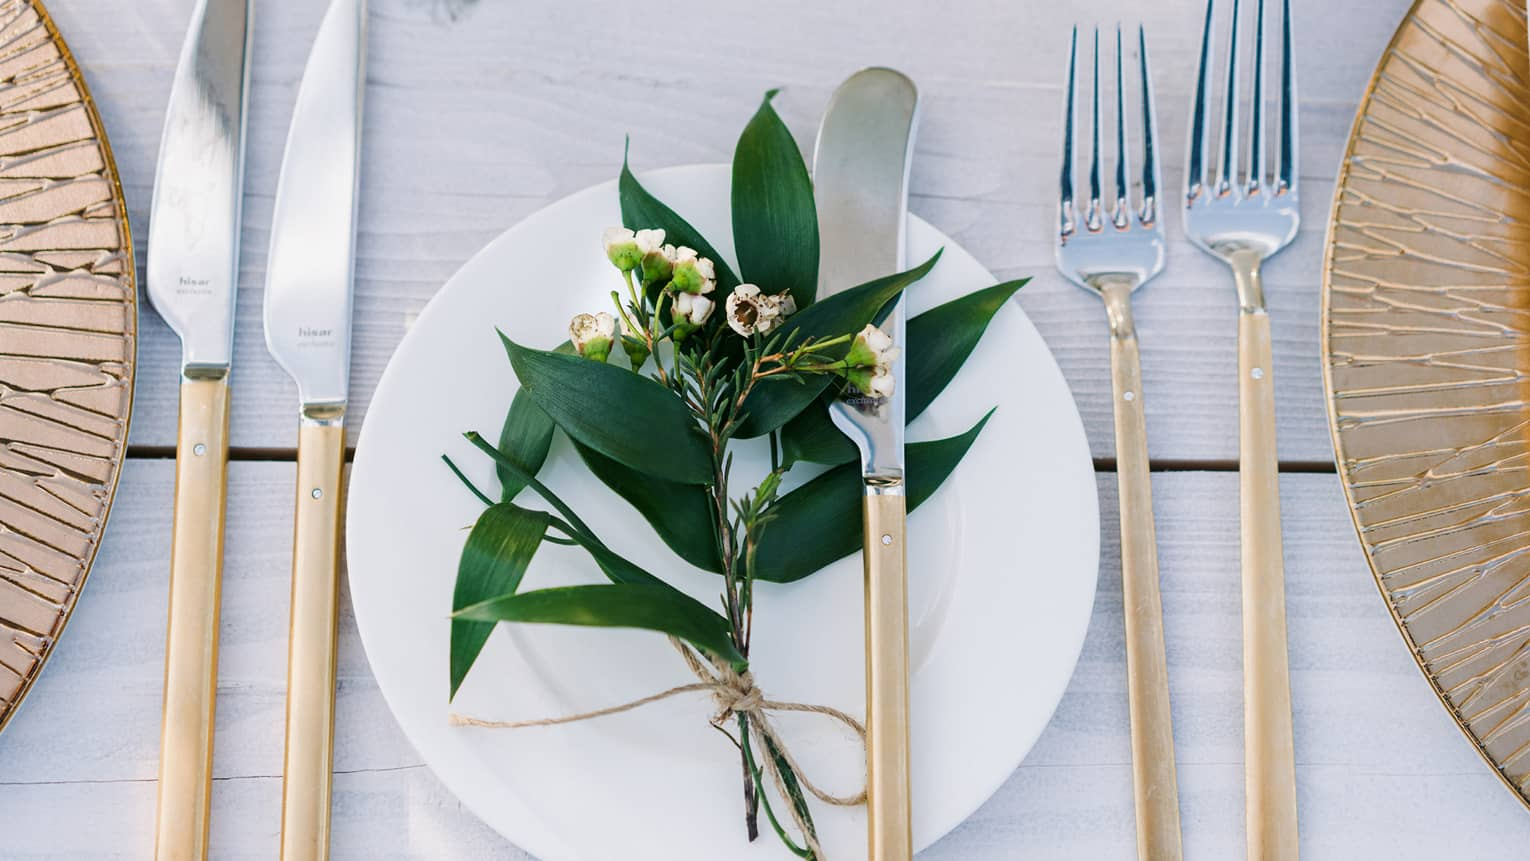 A bohemian table setting of gold chargers, modern long gold and silver flatware, white porcelain plates and a sprig of greenery